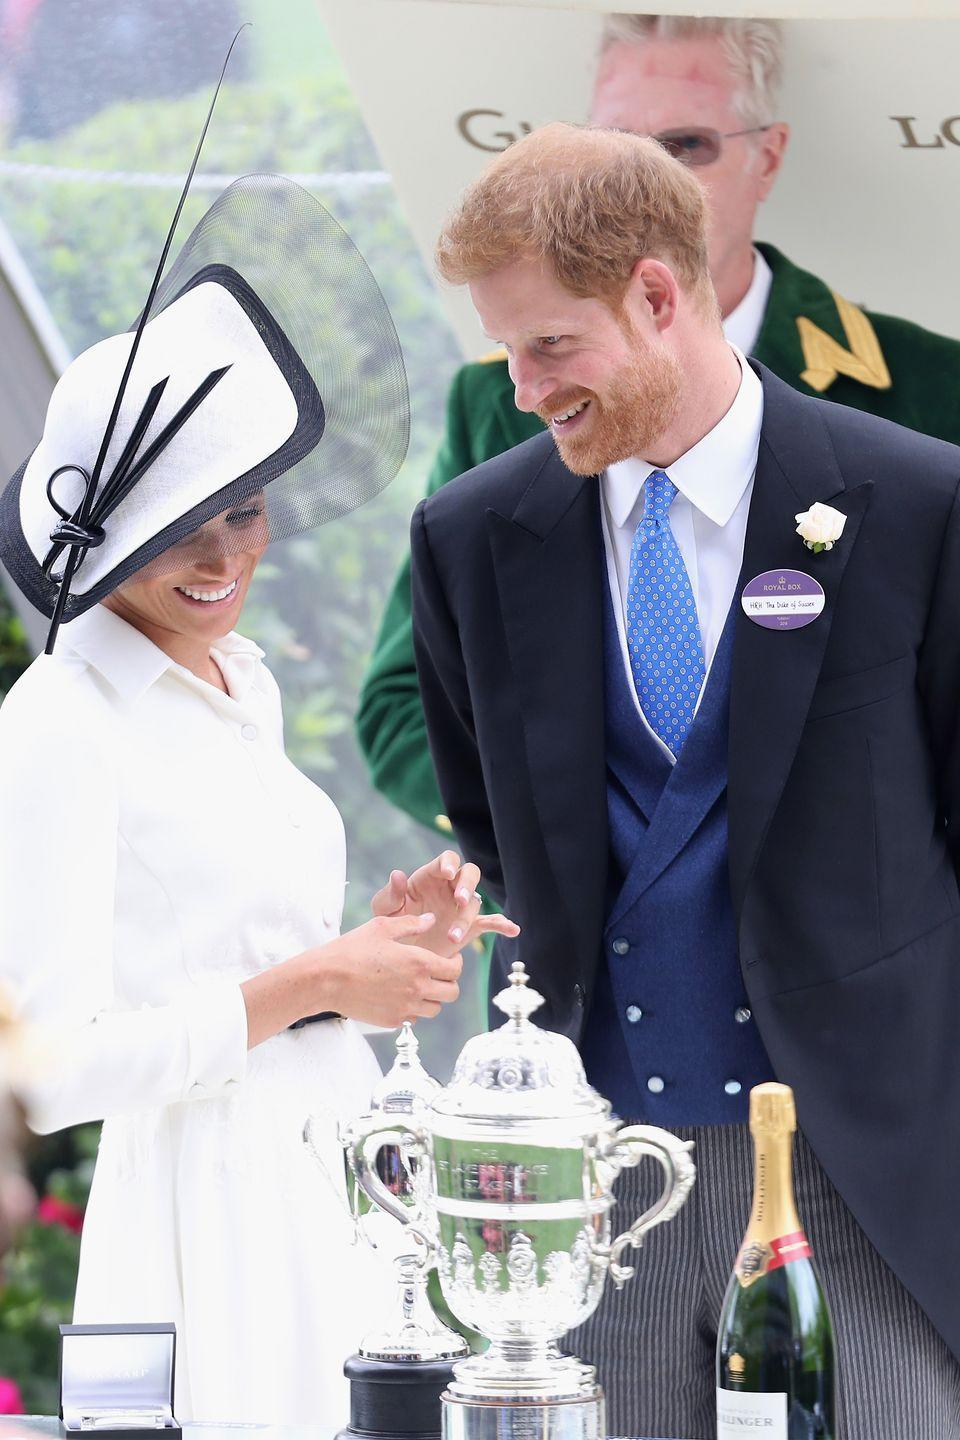 """<p>Exactly a month after their wedding, the newlyweds were all smiles at the <a href=""""https://www.harpersbazaar.com/celebrity/latest/a21613382/meghan-markle-prince-harry-royal-ascot-2018/"""" rel=""""nofollow noopener"""" target=""""_blank"""" data-ylk=""""slk:Royal Ascot"""" class=""""link rapid-noclick-resp"""">Royal Ascot</a>. </p>"""